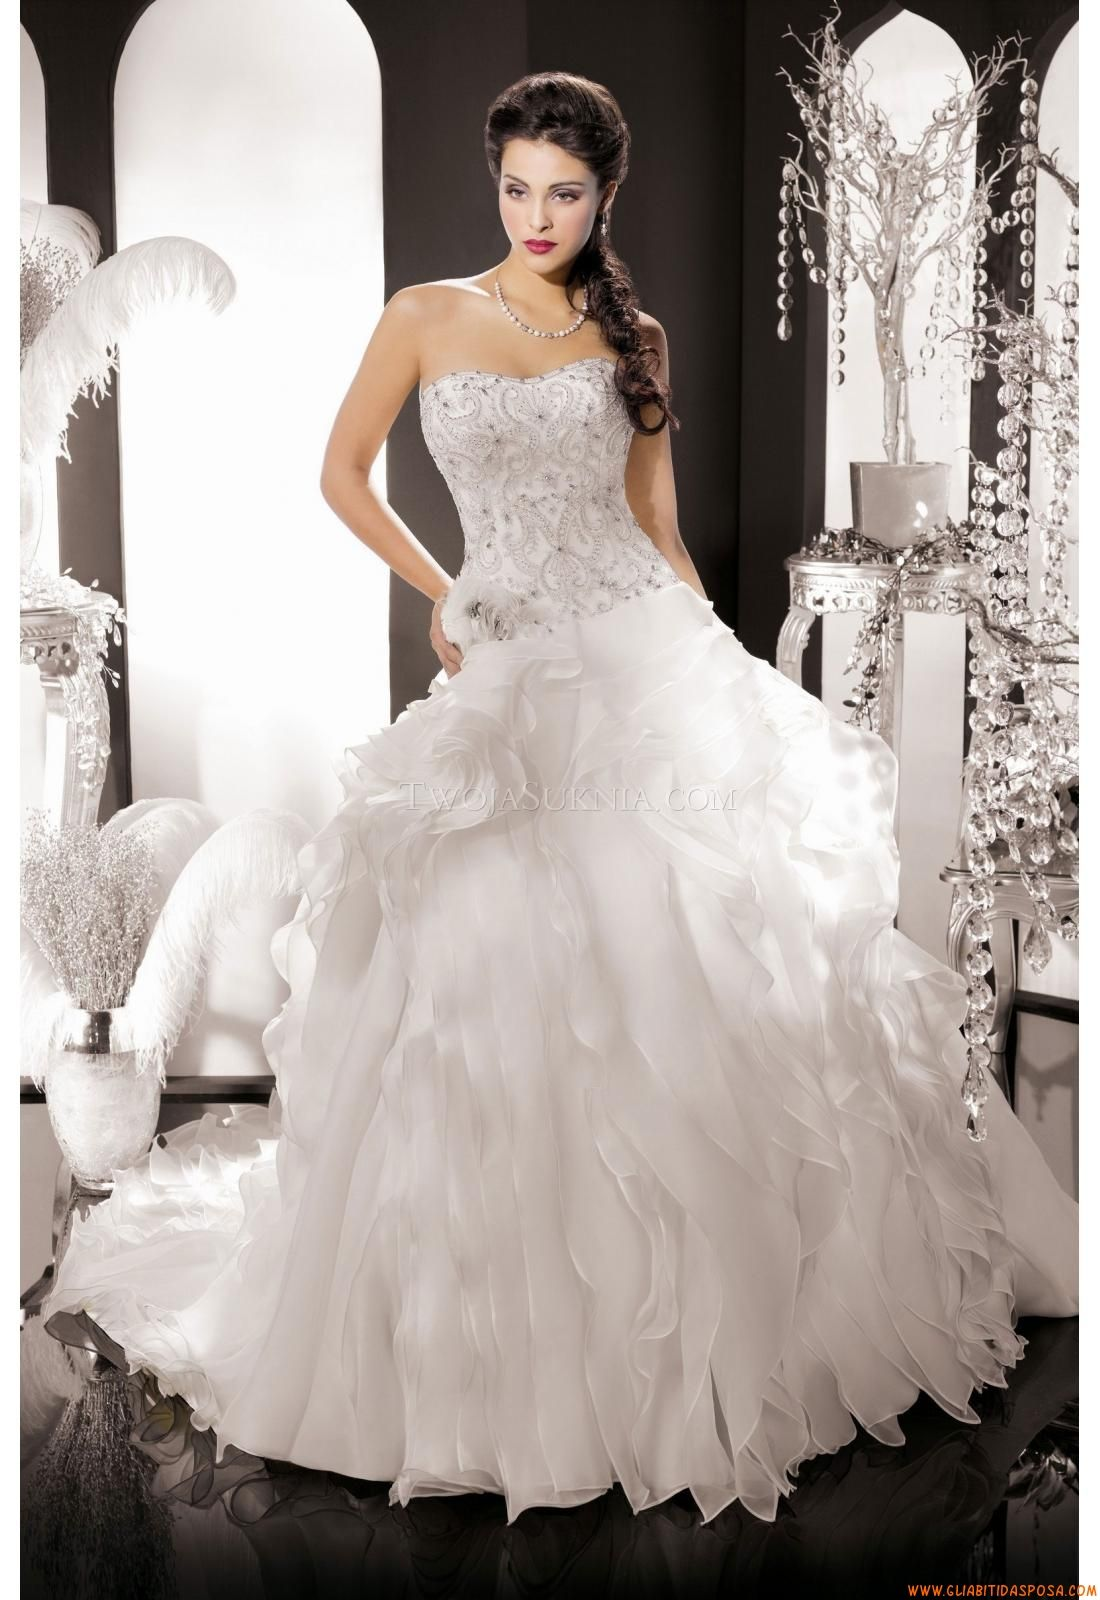 Abiti da Sposa Kelly Star KS 146-30 2014